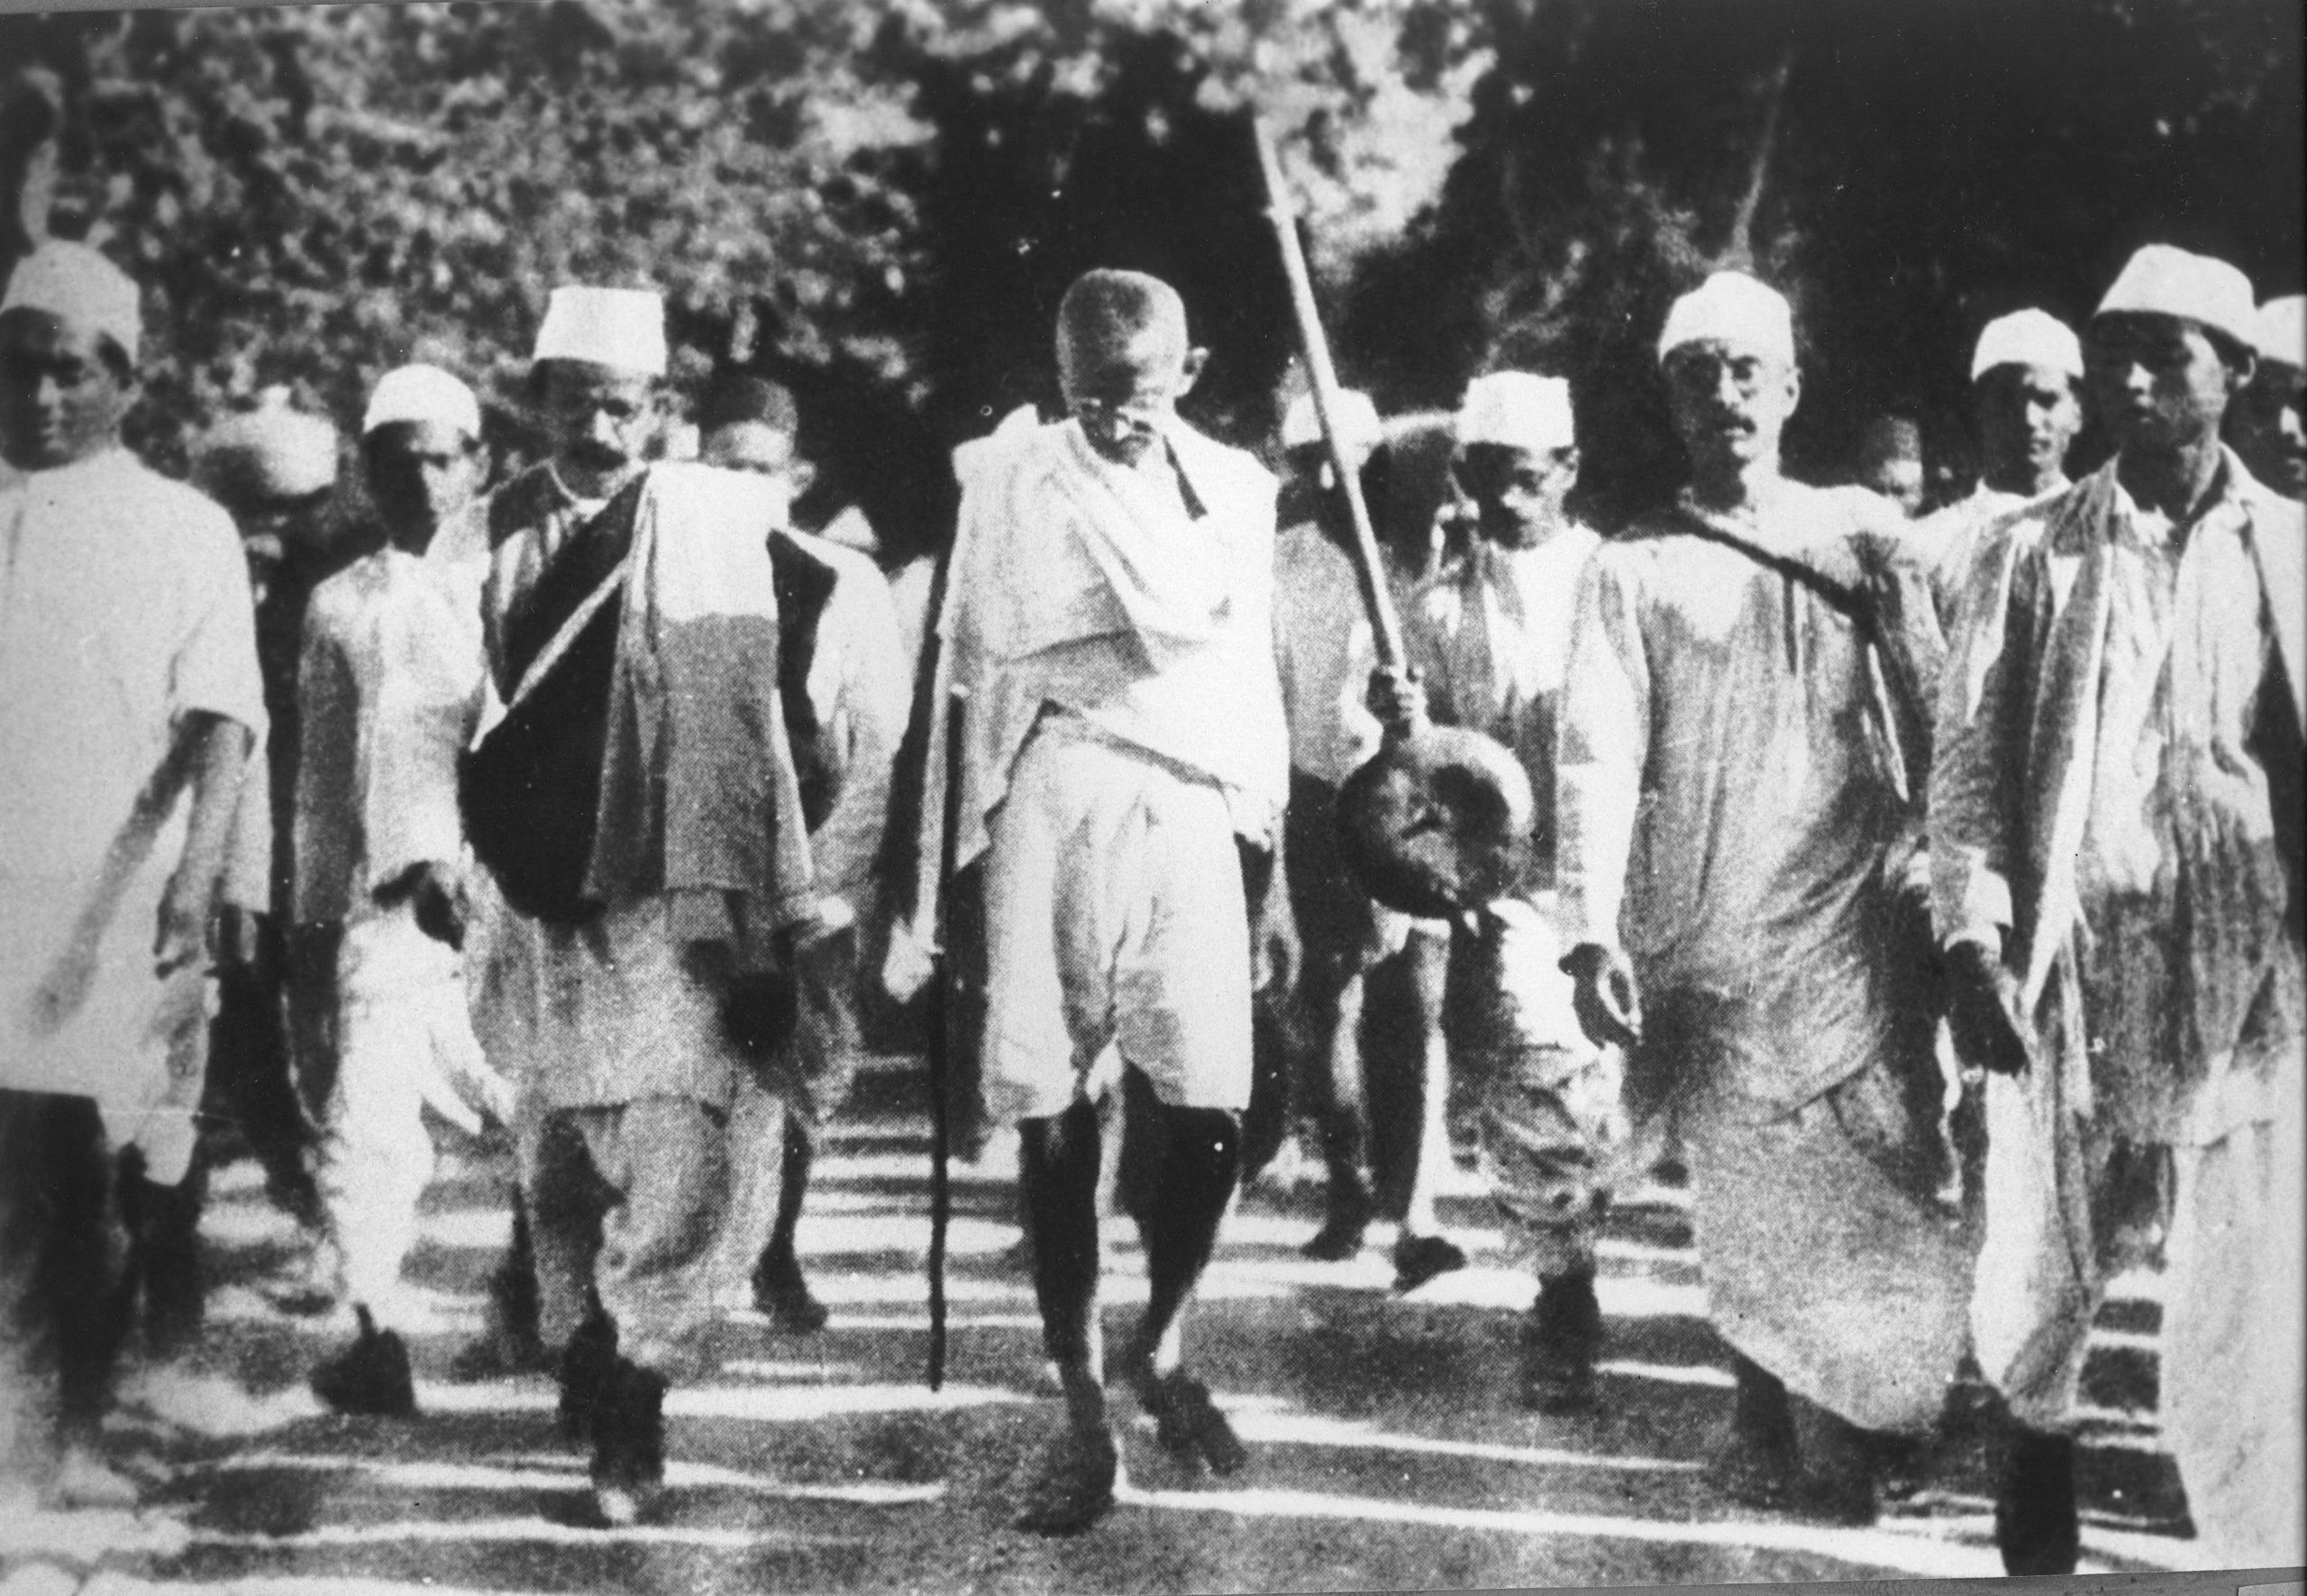 Gandhi peacefully protests in the Salt March